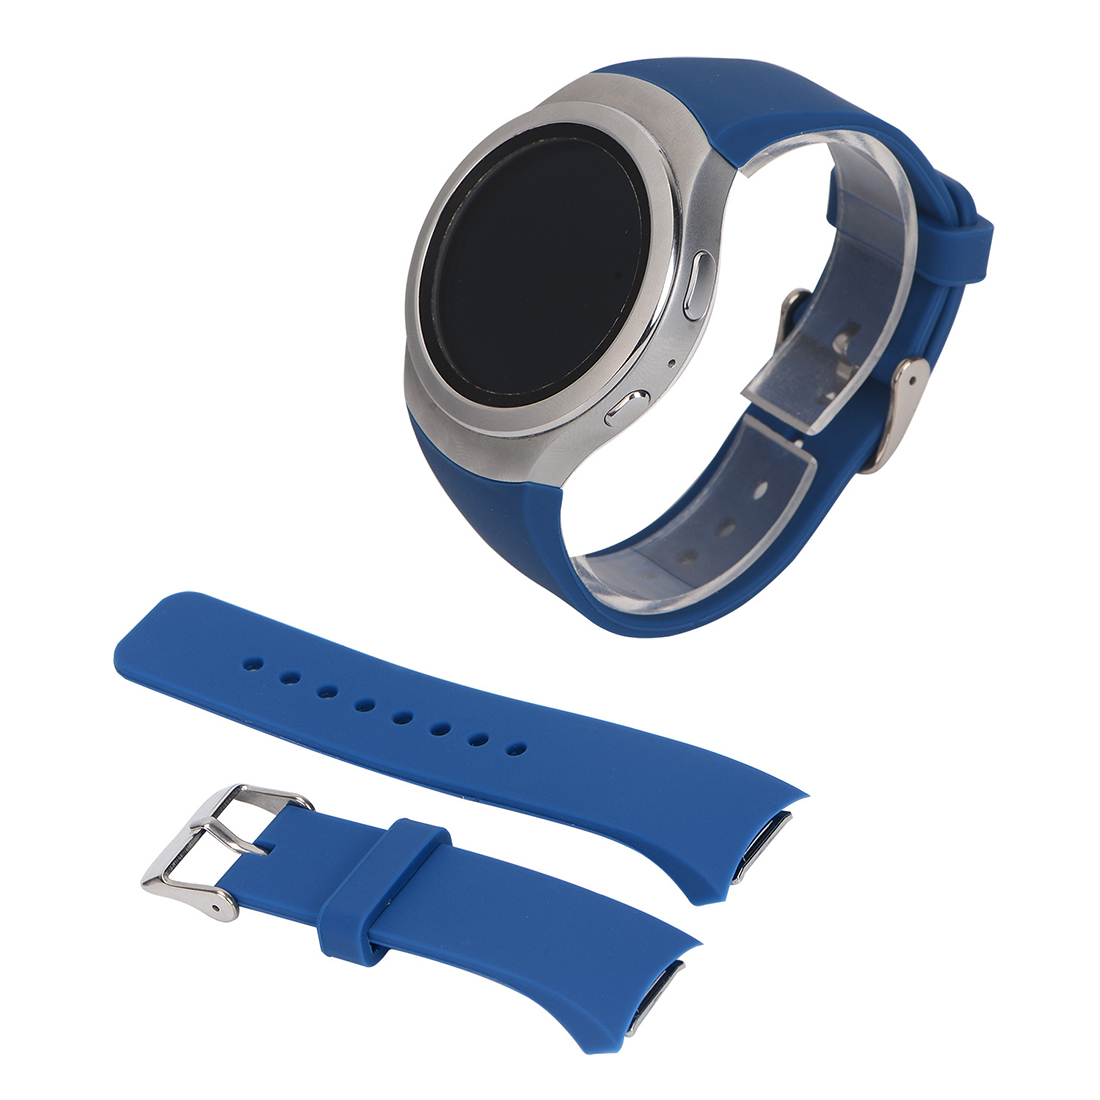 Luxury Silicone Watch Band Strap for Samsung Galaxy S2 Gear SM-R720 Navy blue 2016 silicone rubber watch band for samsung galaxy gear s2 sm r720 replacement smartwatch bands strap bracelet with patterns